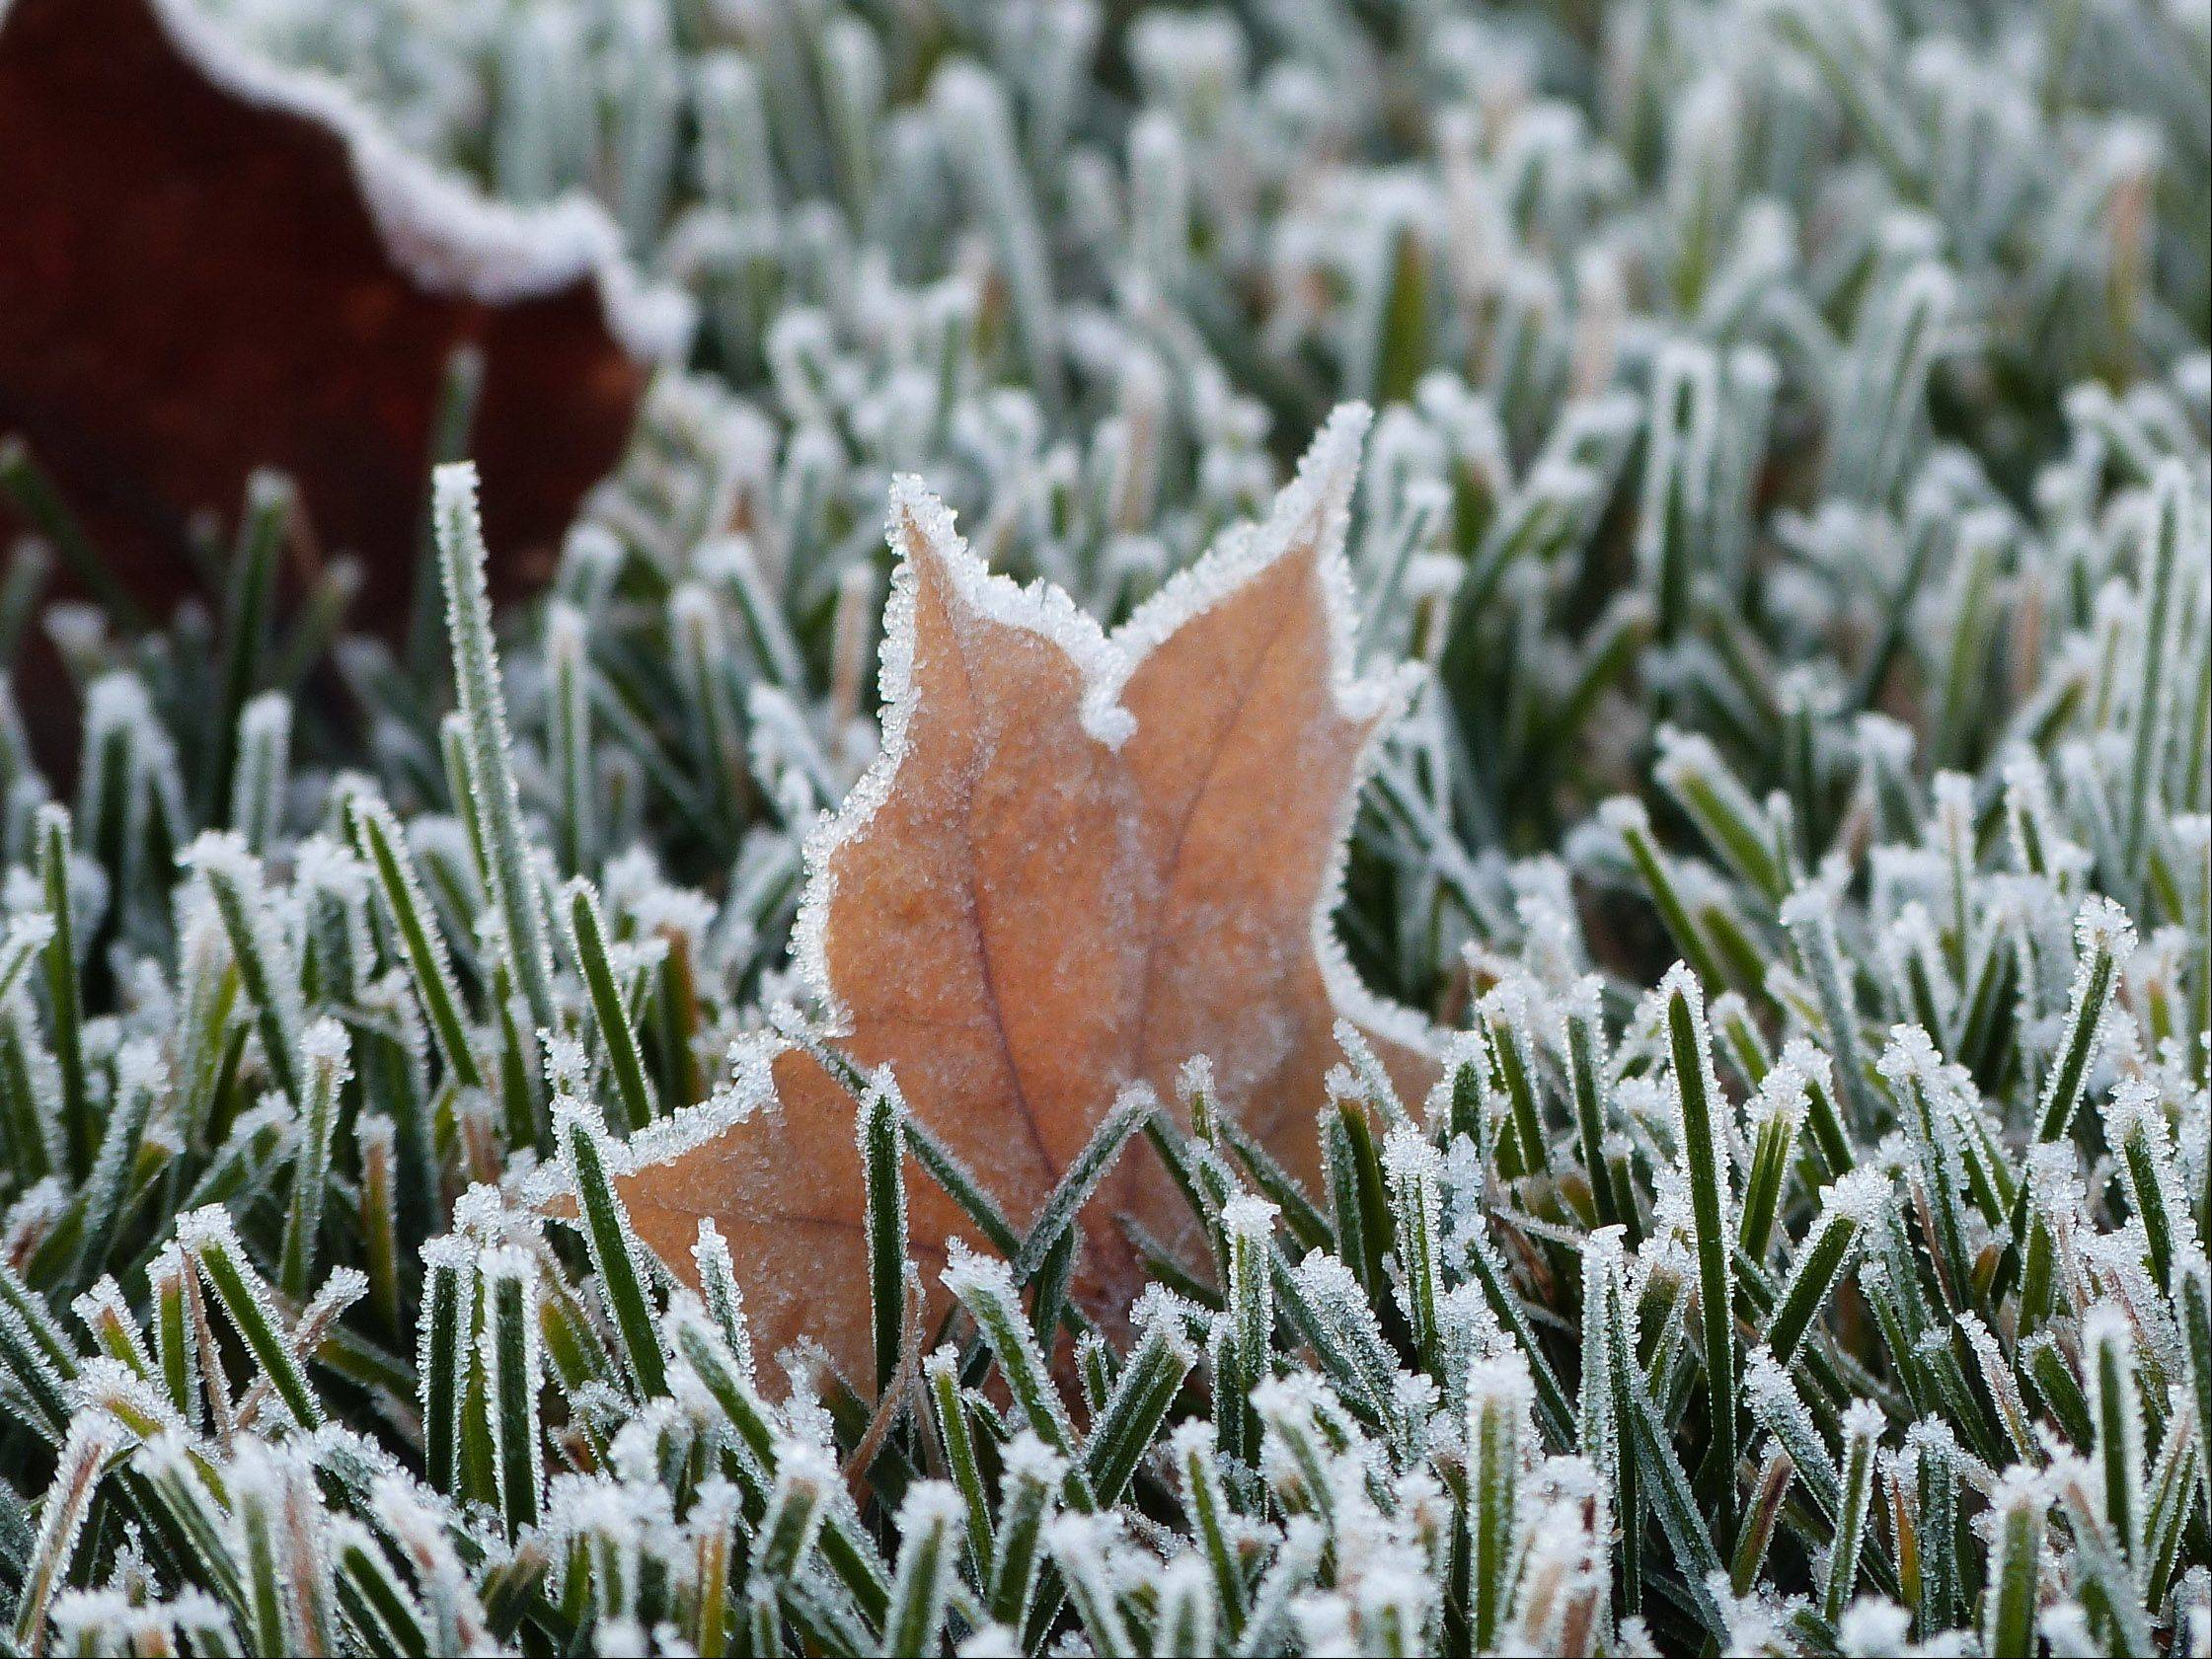 Frost covers blades of grass and the edges of maple leaves early one morning in Wheeling several weeks ago.